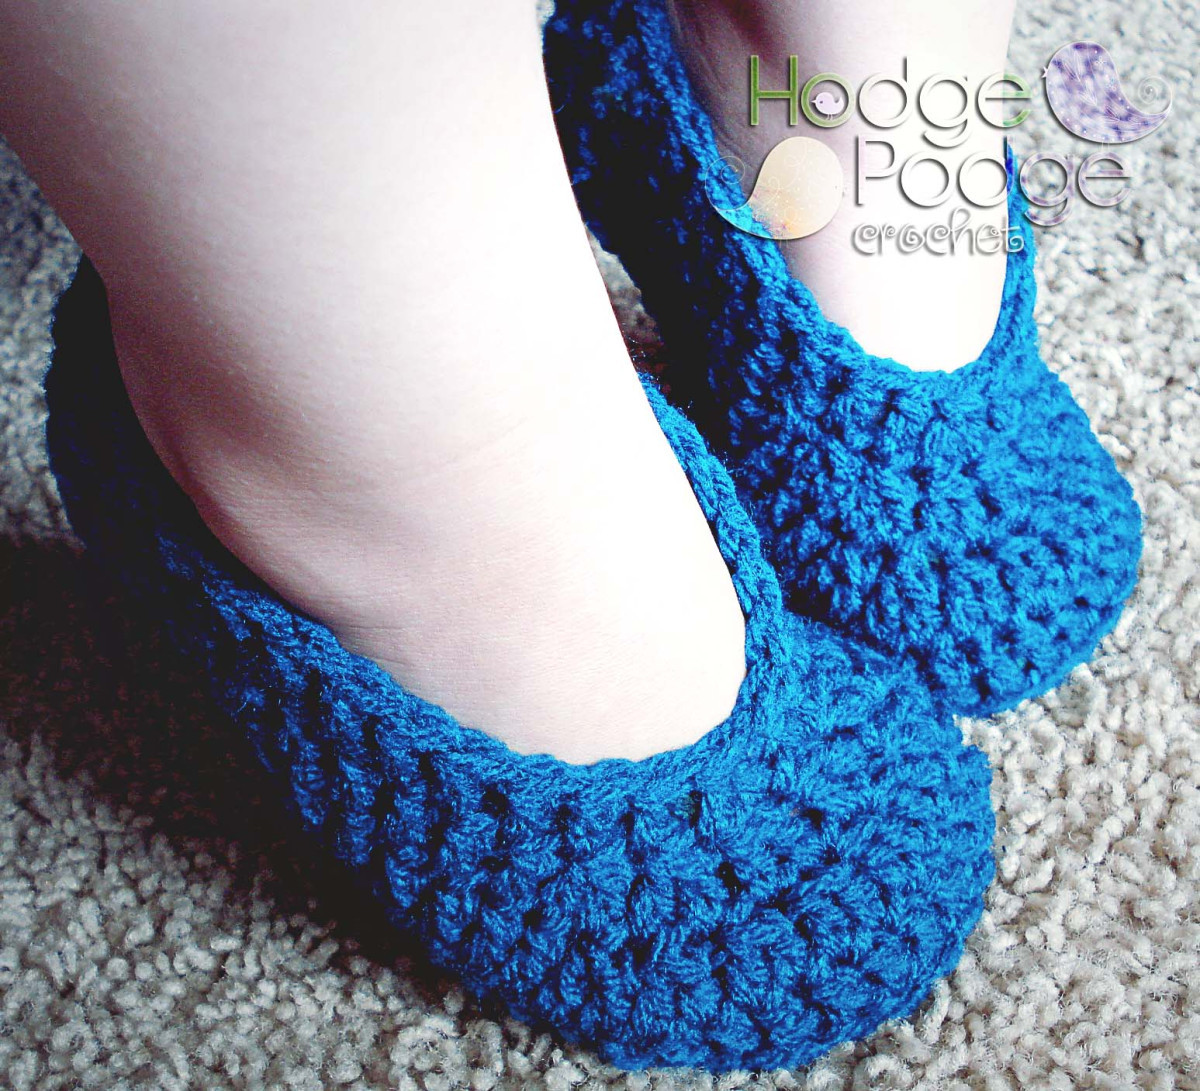 Unique Simple toddler Slippers Crochet toddler Slippers Of Delightful 50 Images Crochet toddler Slippers